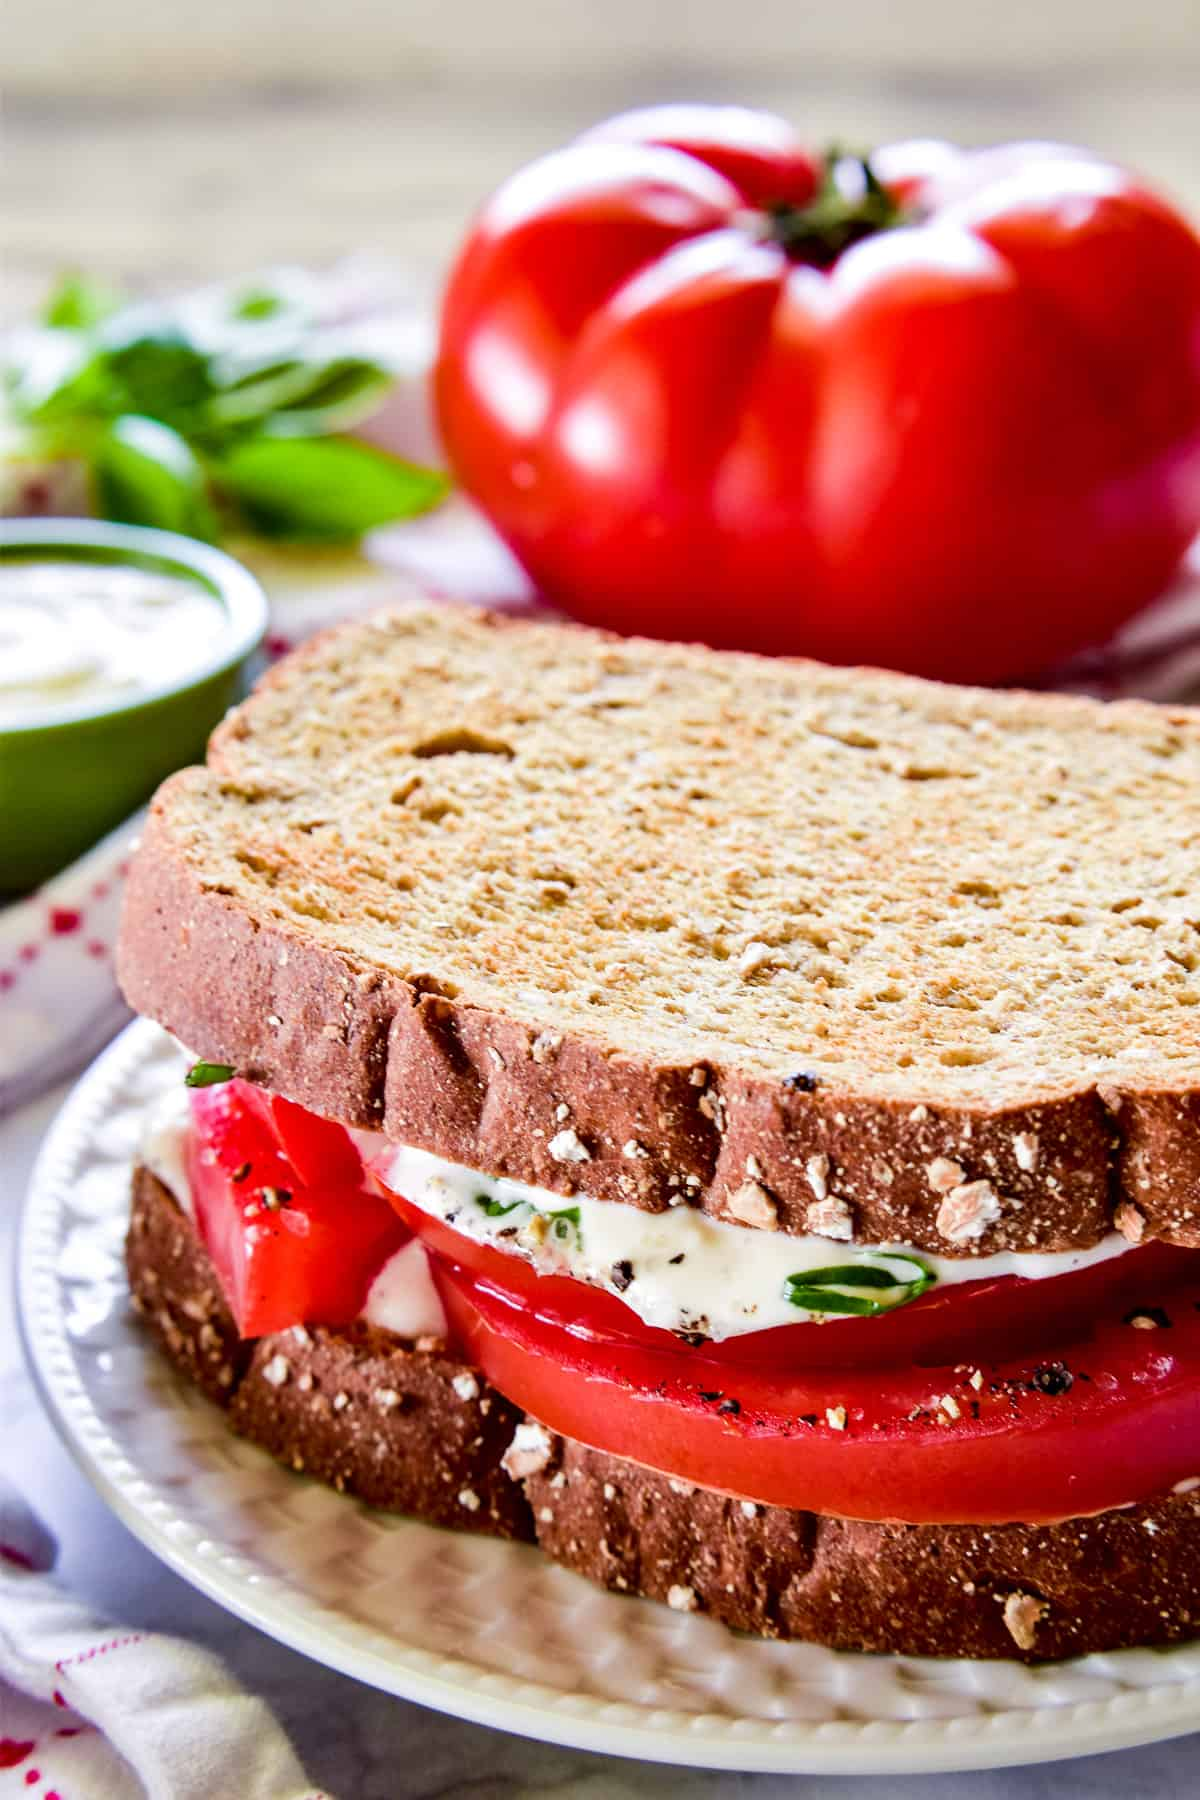 Tomato Sandwich on a white plate with a beefsteak tomato in the background